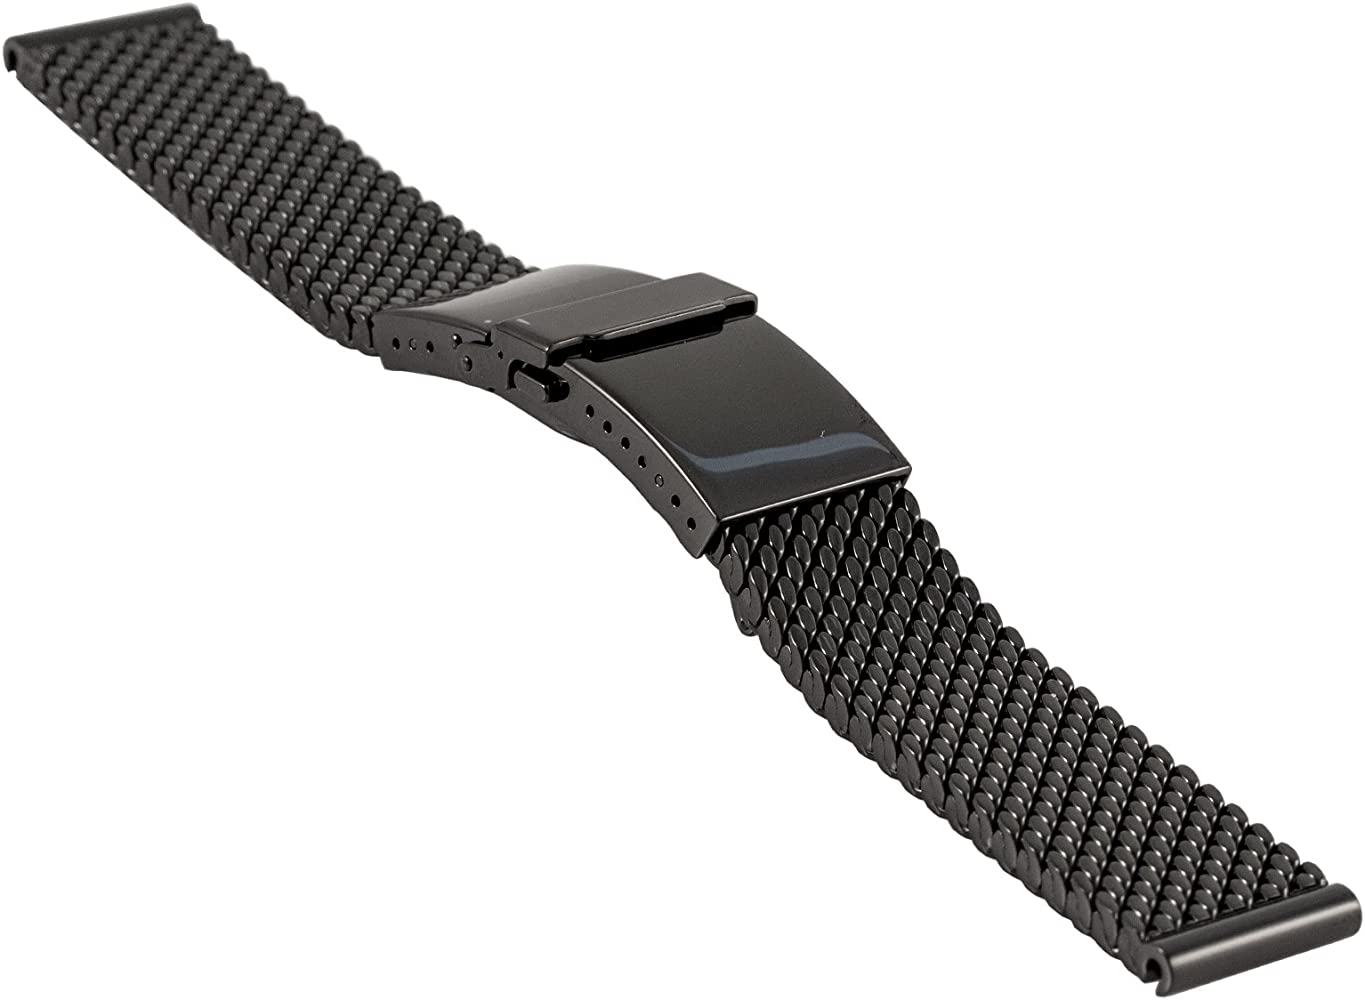 800e64bb8 Staib milanaise/mesh Watch Strap Deluxe with Deployment Clasp with  flip-Lock Buckle,